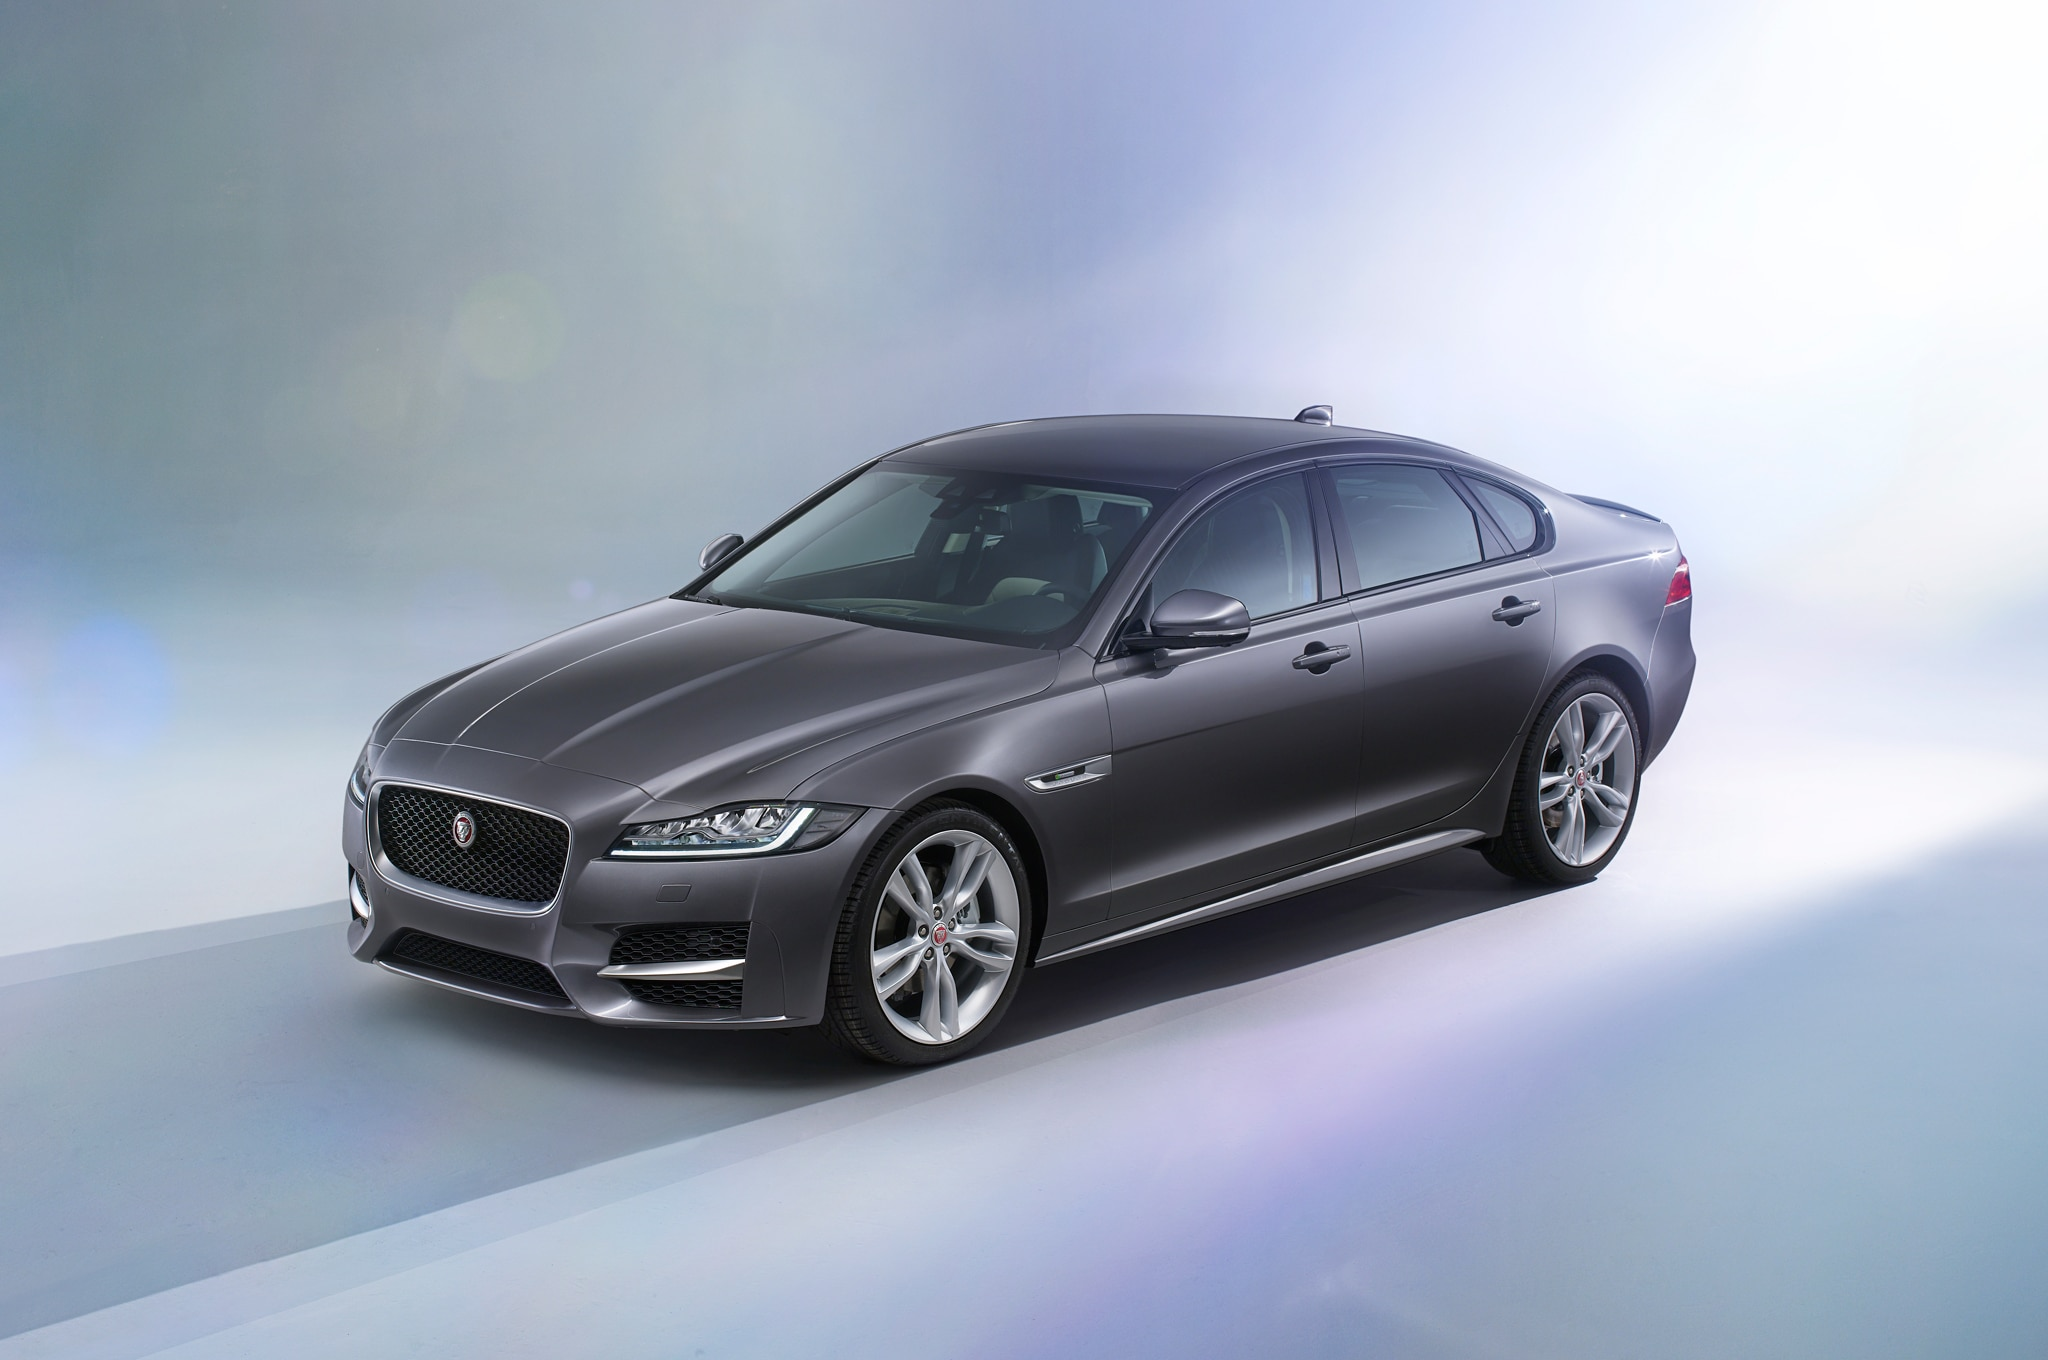 2016 jaguar xf review. Black Bedroom Furniture Sets. Home Design Ideas